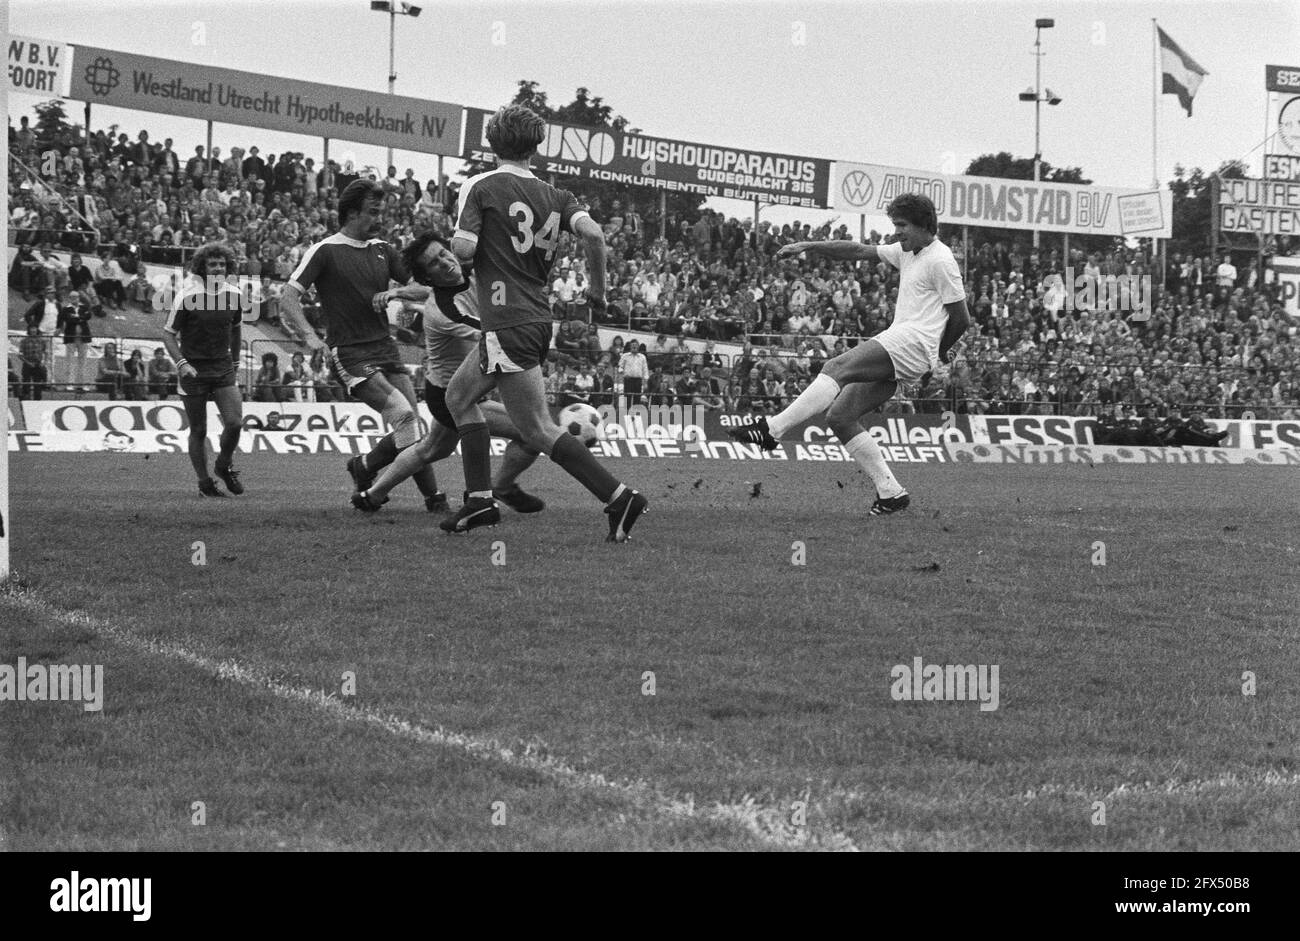 First Fc Black and White Stock Photos & Images - Alamy